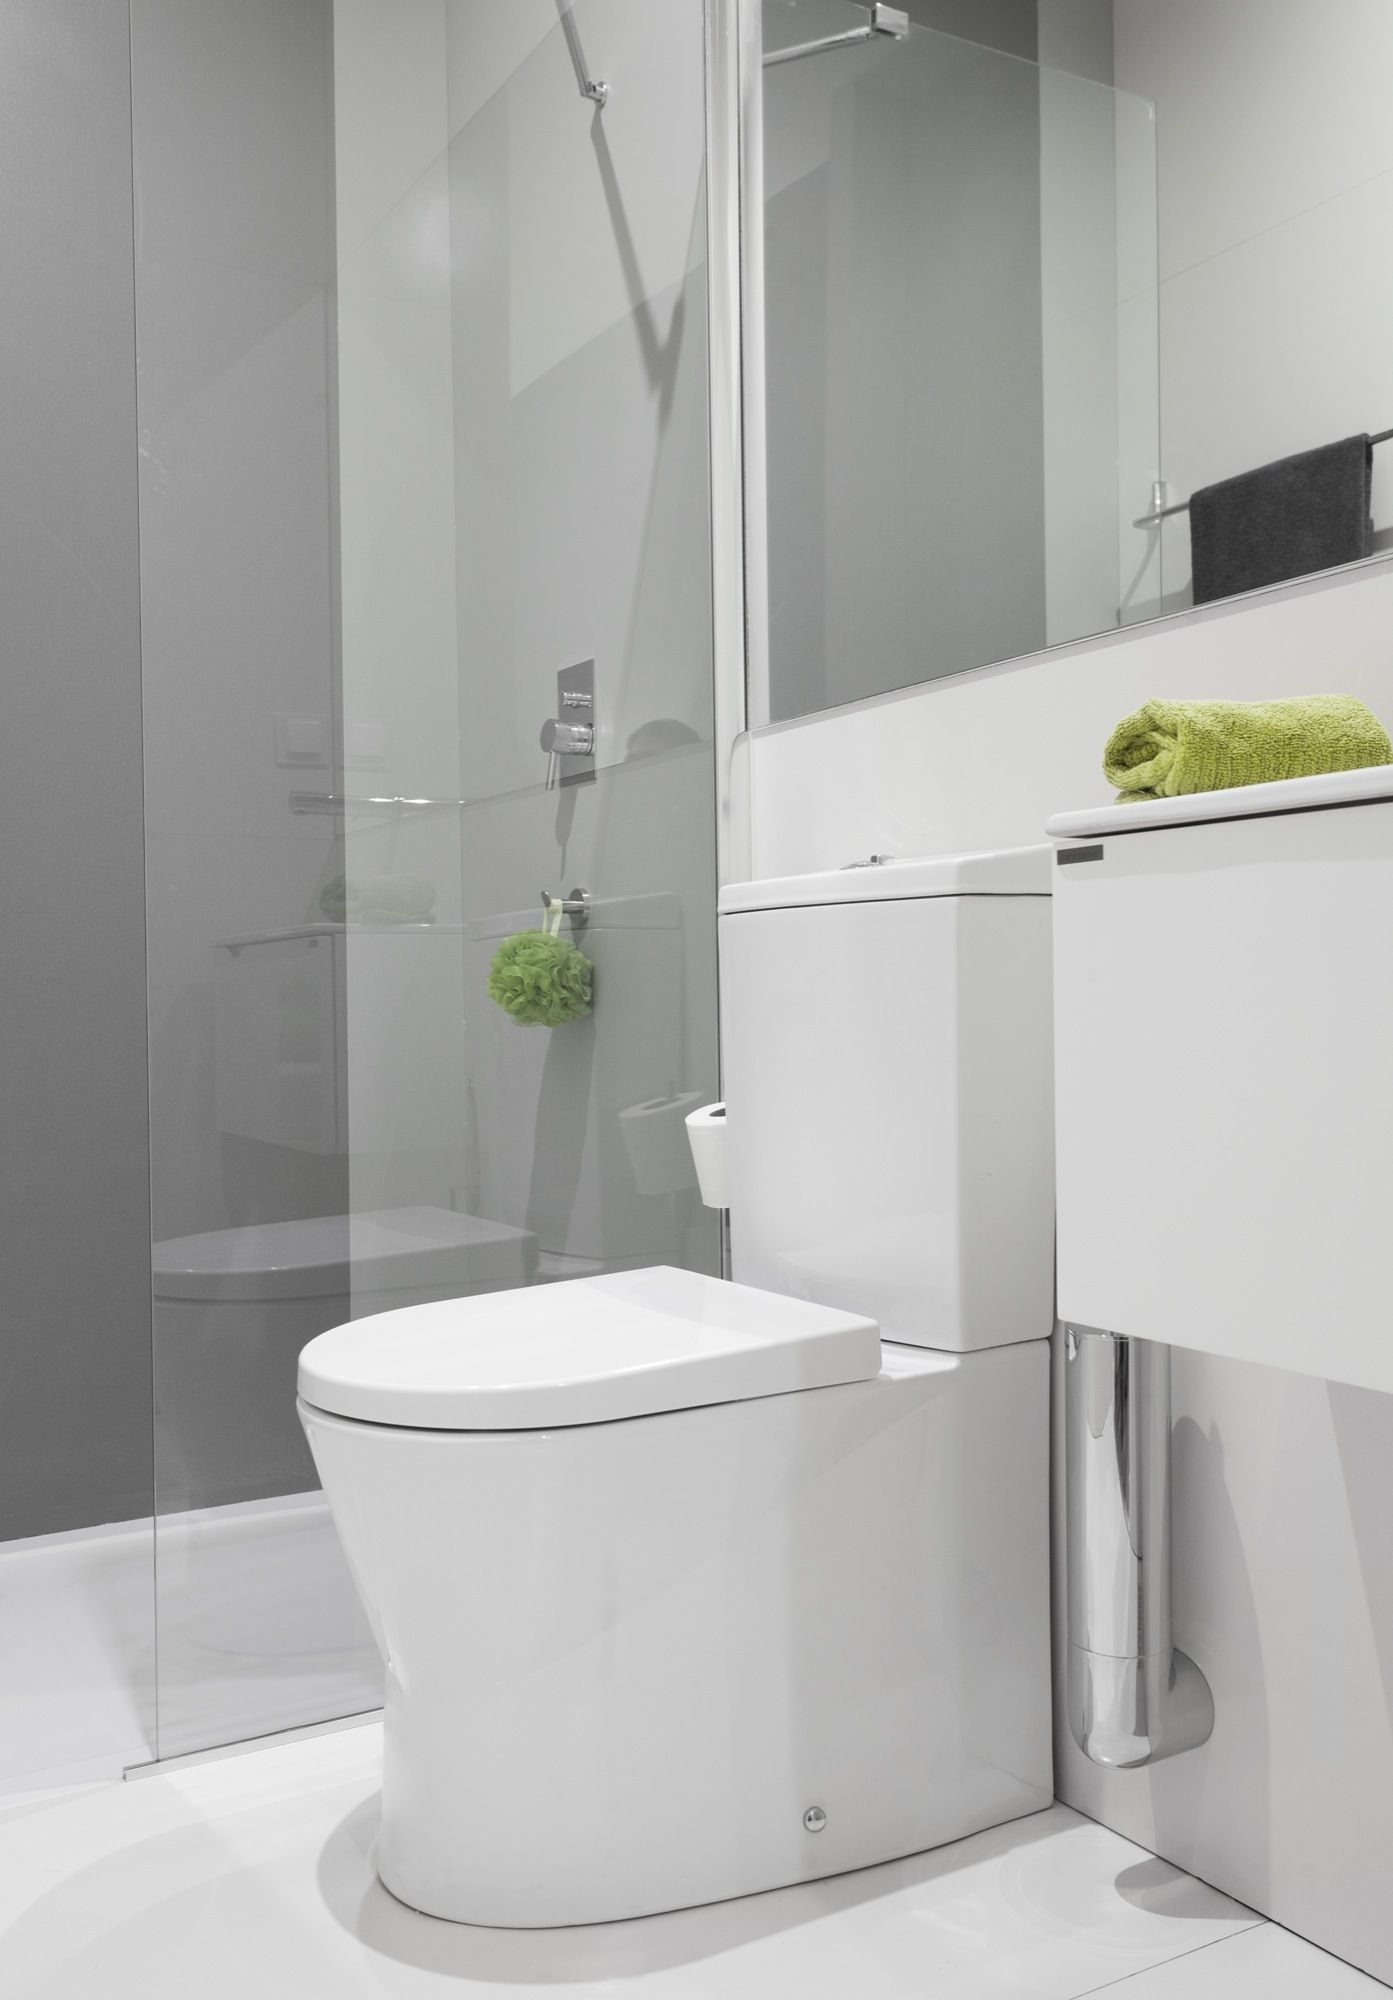 Narrow Bathroom With Sanindusa Products Small Toilet Size Small Basin With Cabinet Cloakroom